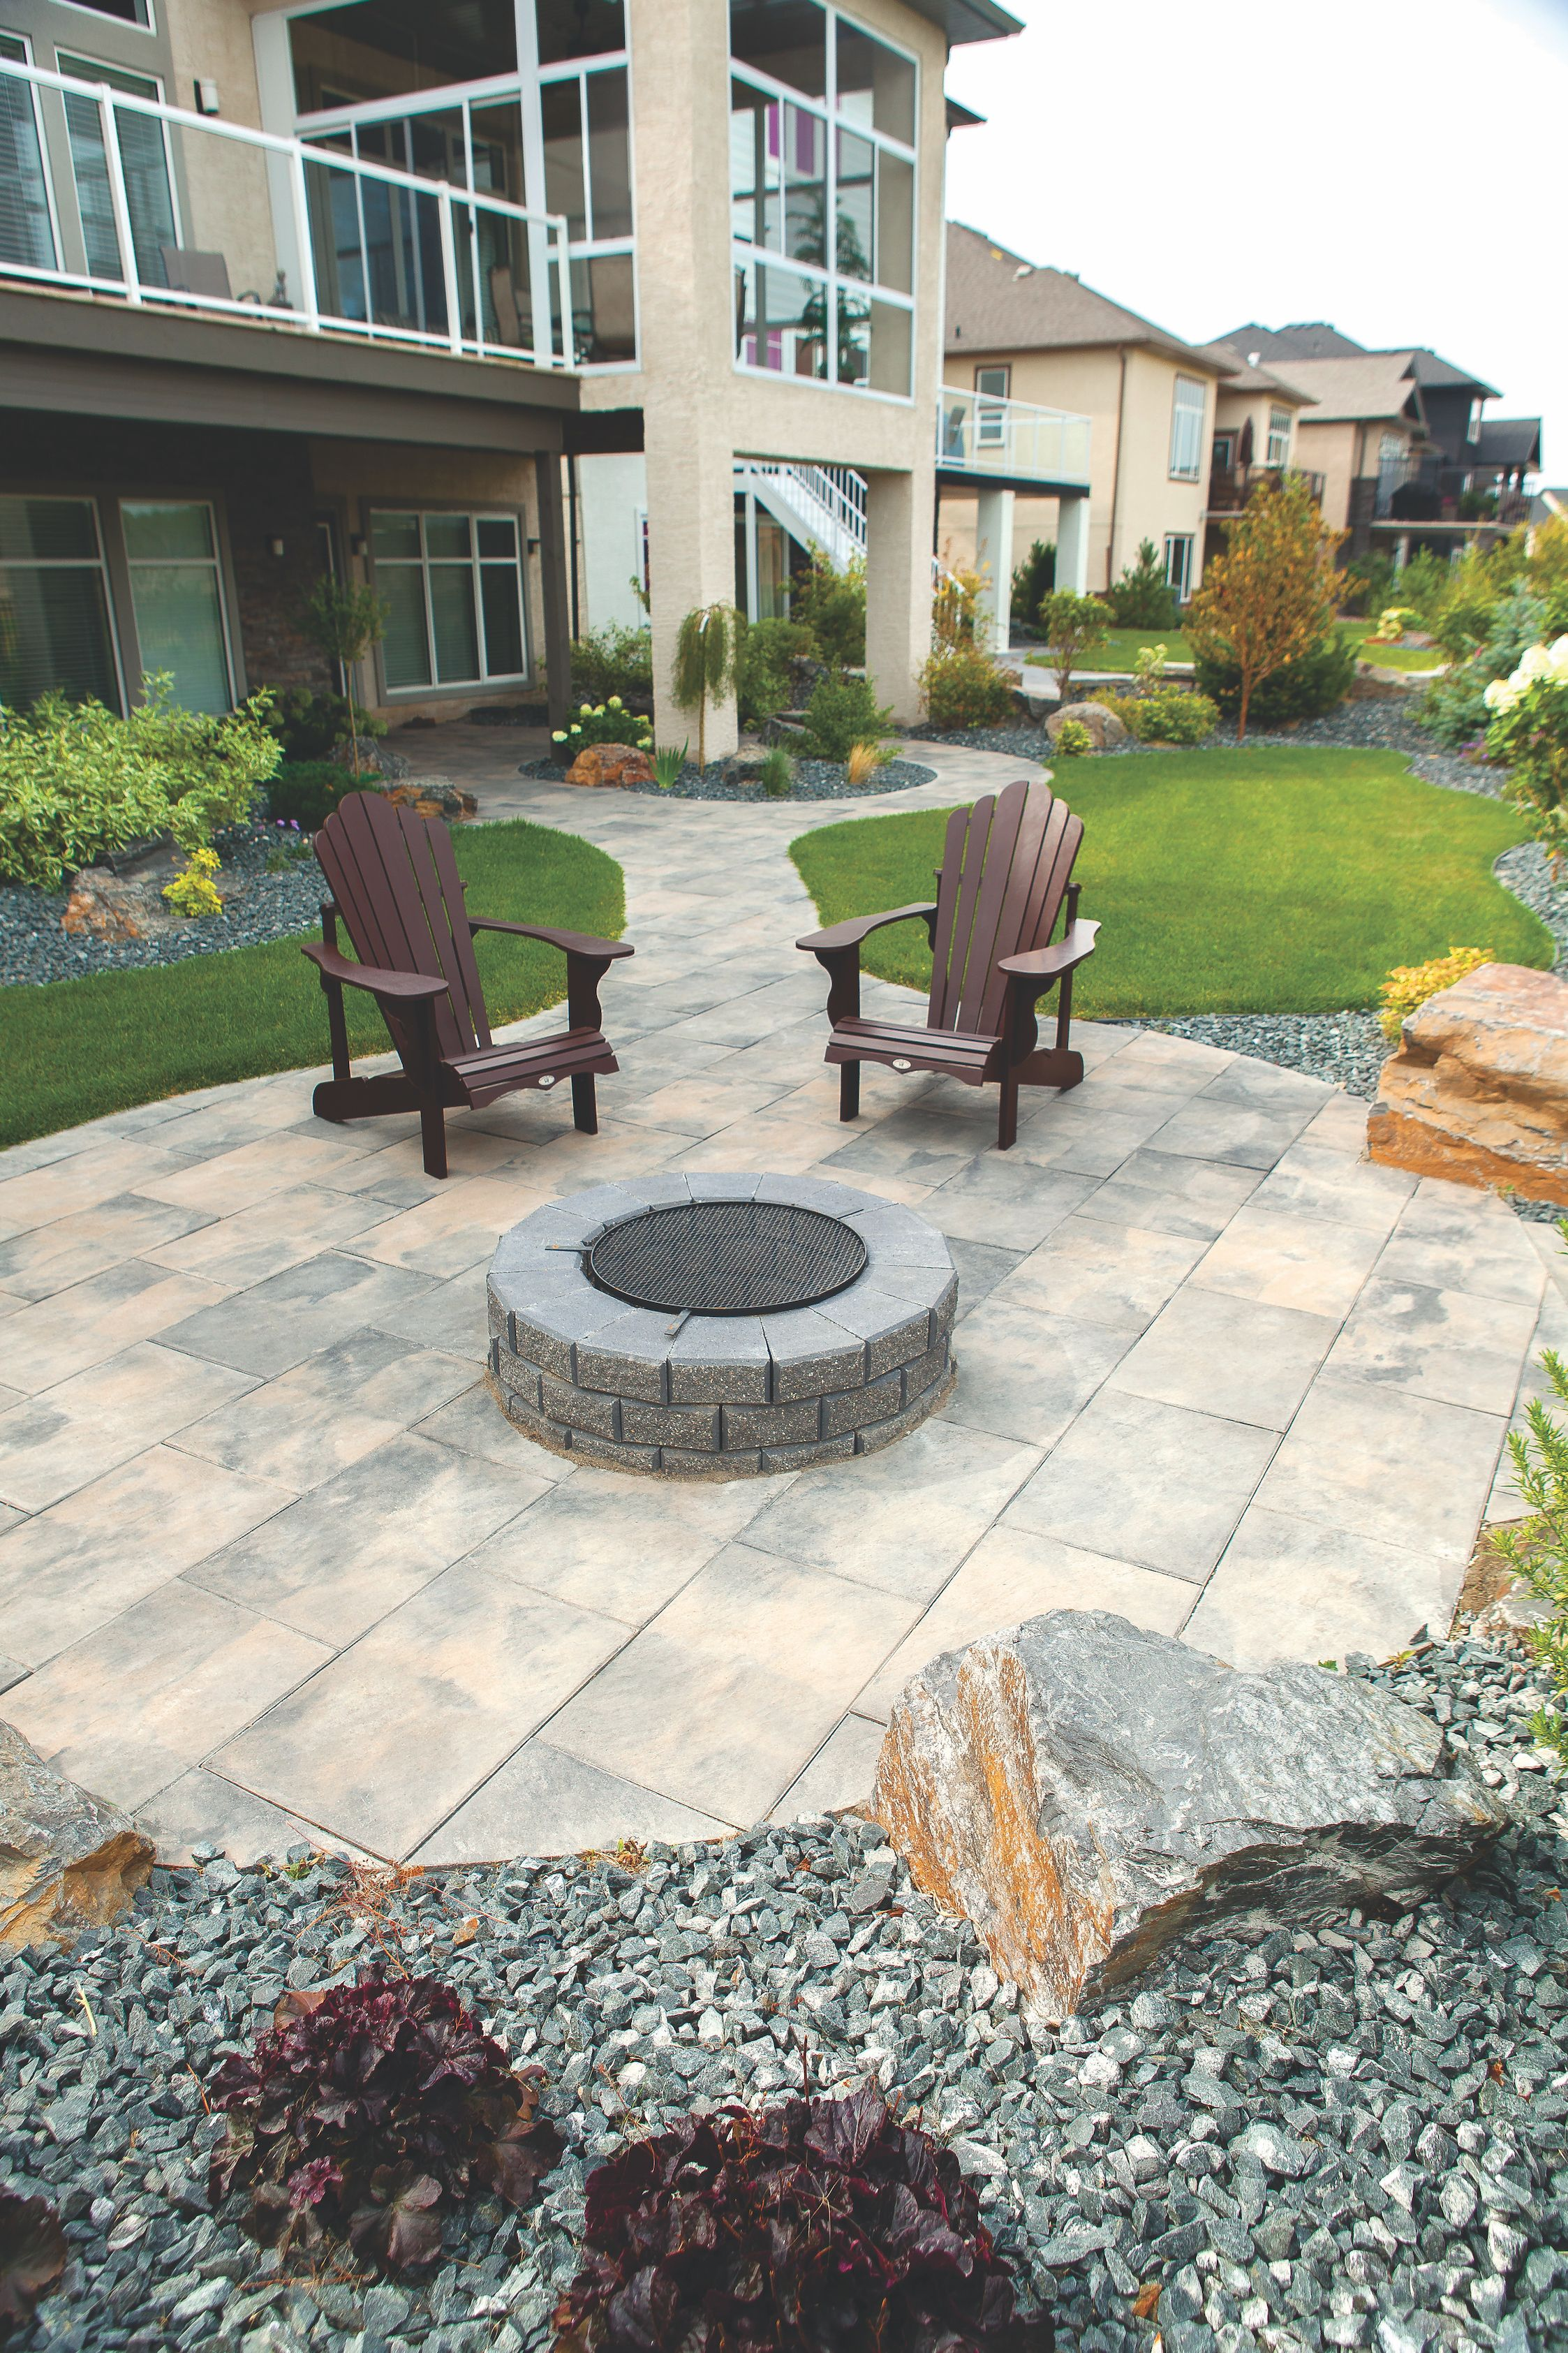 Stone fire pit designs patio traditional with artistic hardscape - Stone Oasis Circle Firepit Surrounded By Dynasty Slate Slabs Outdoor Fireoutdoor Livingfire Pitsbackyard Ideasslatepatiosfireplaceslandscaping Circles